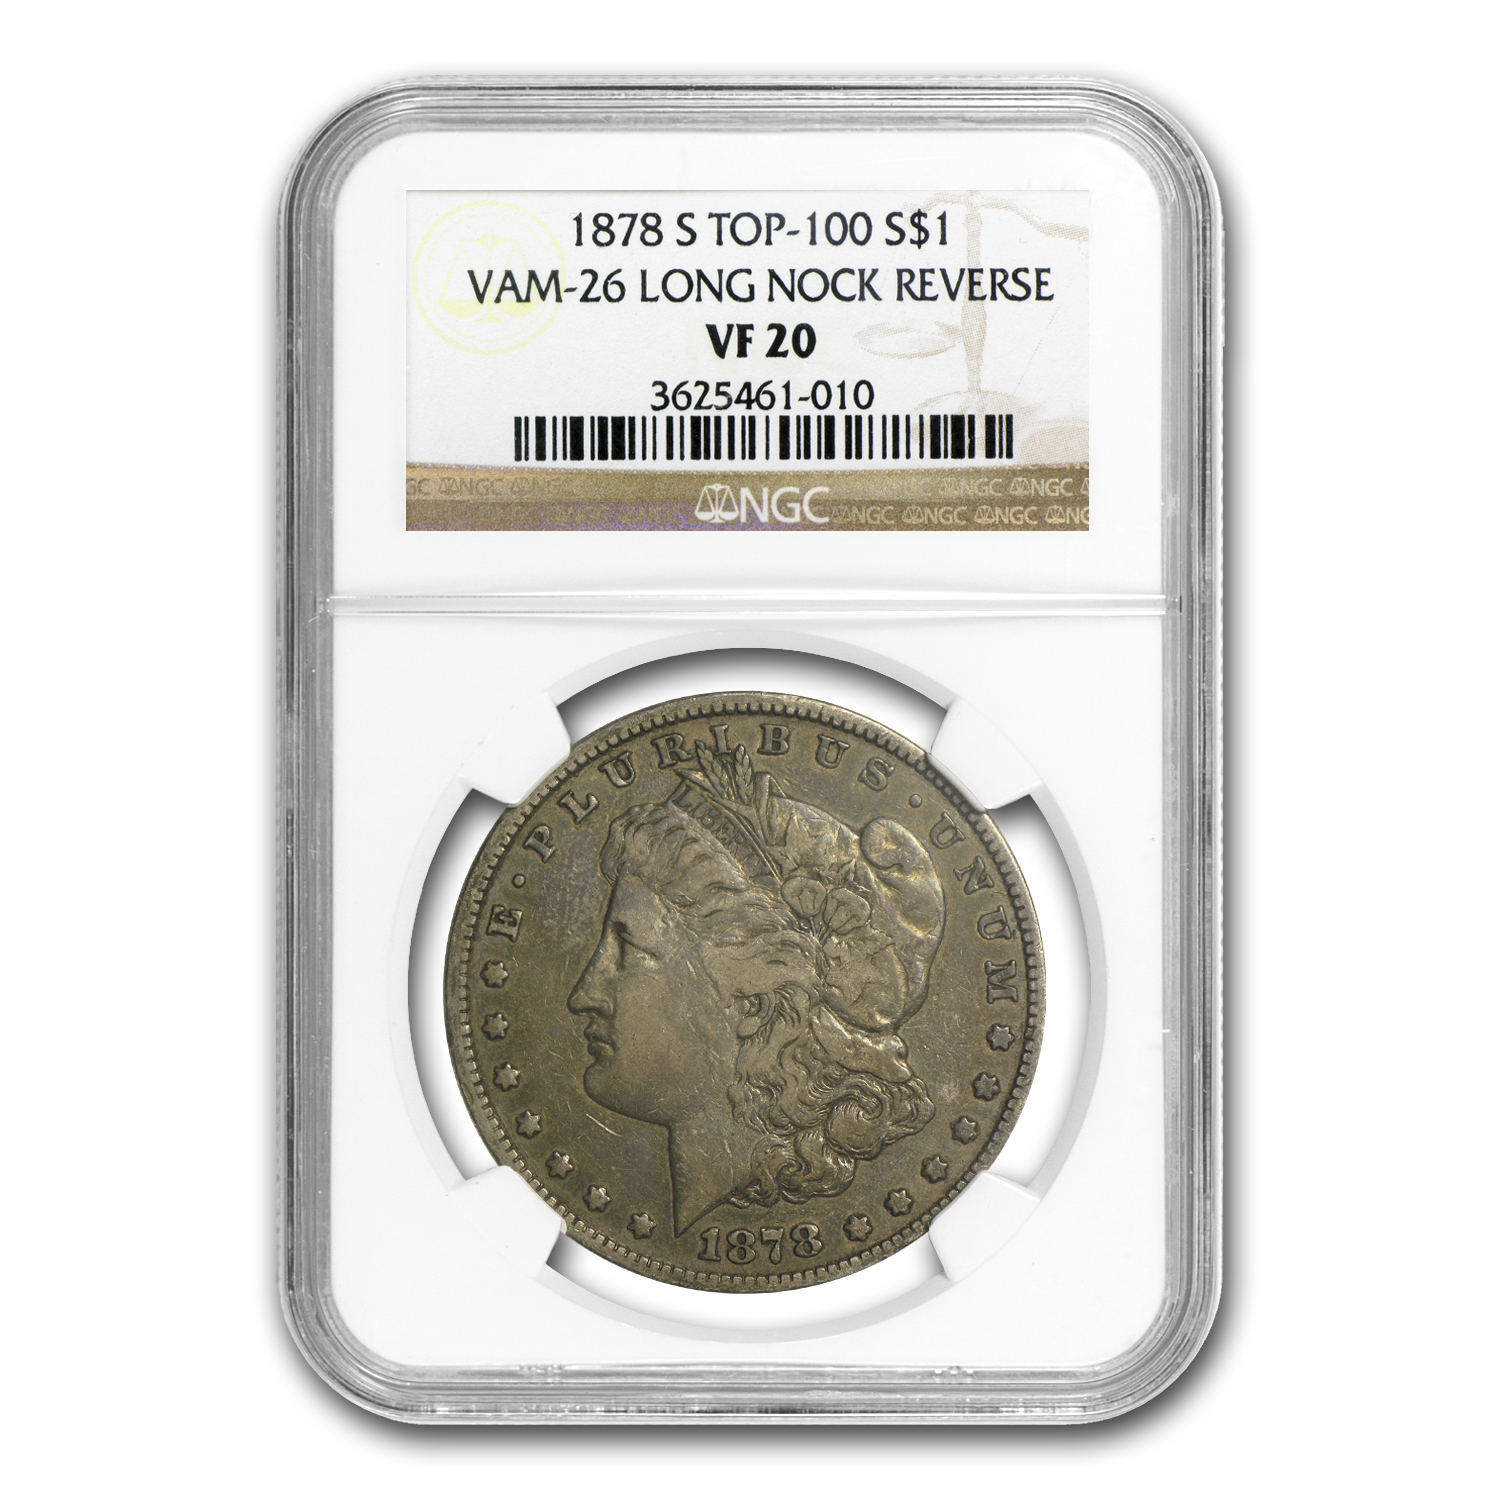 1878-S Morgan Dollar VF-20 NGC VAM-26 Long Nock Reverse Top-100